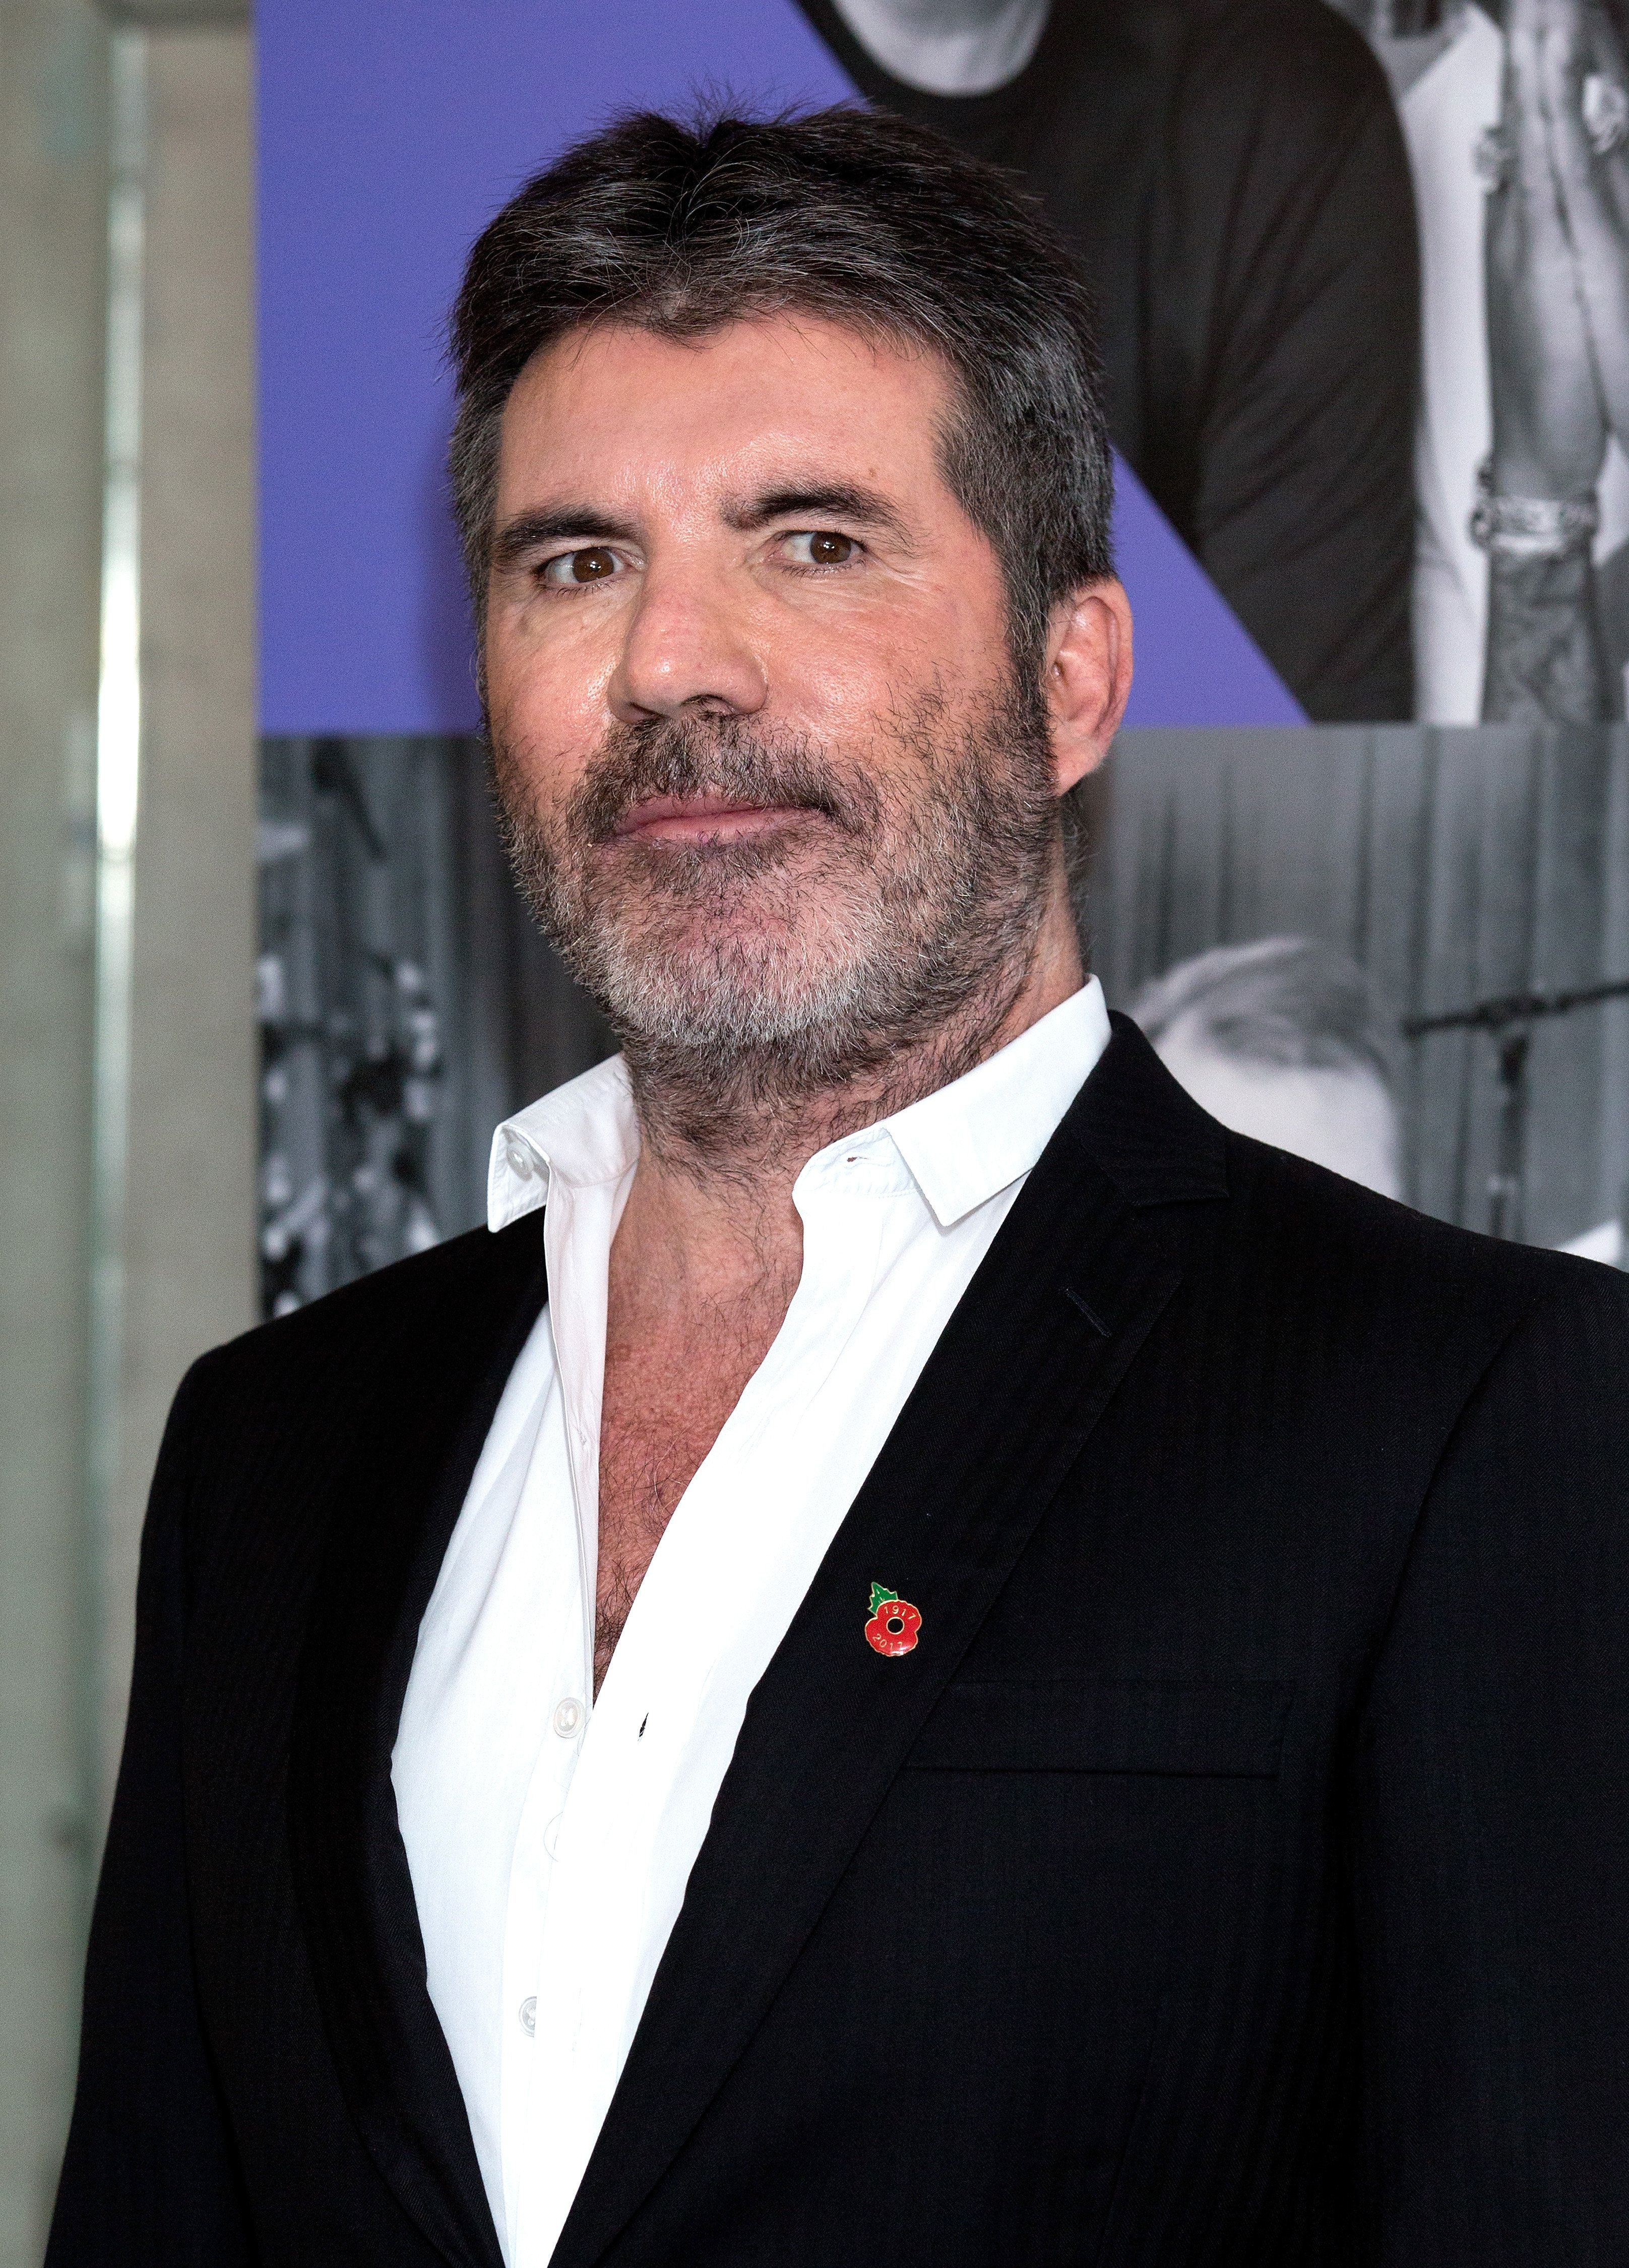 Simon Cowell Has A Rather Unconventional Approach To Christmas